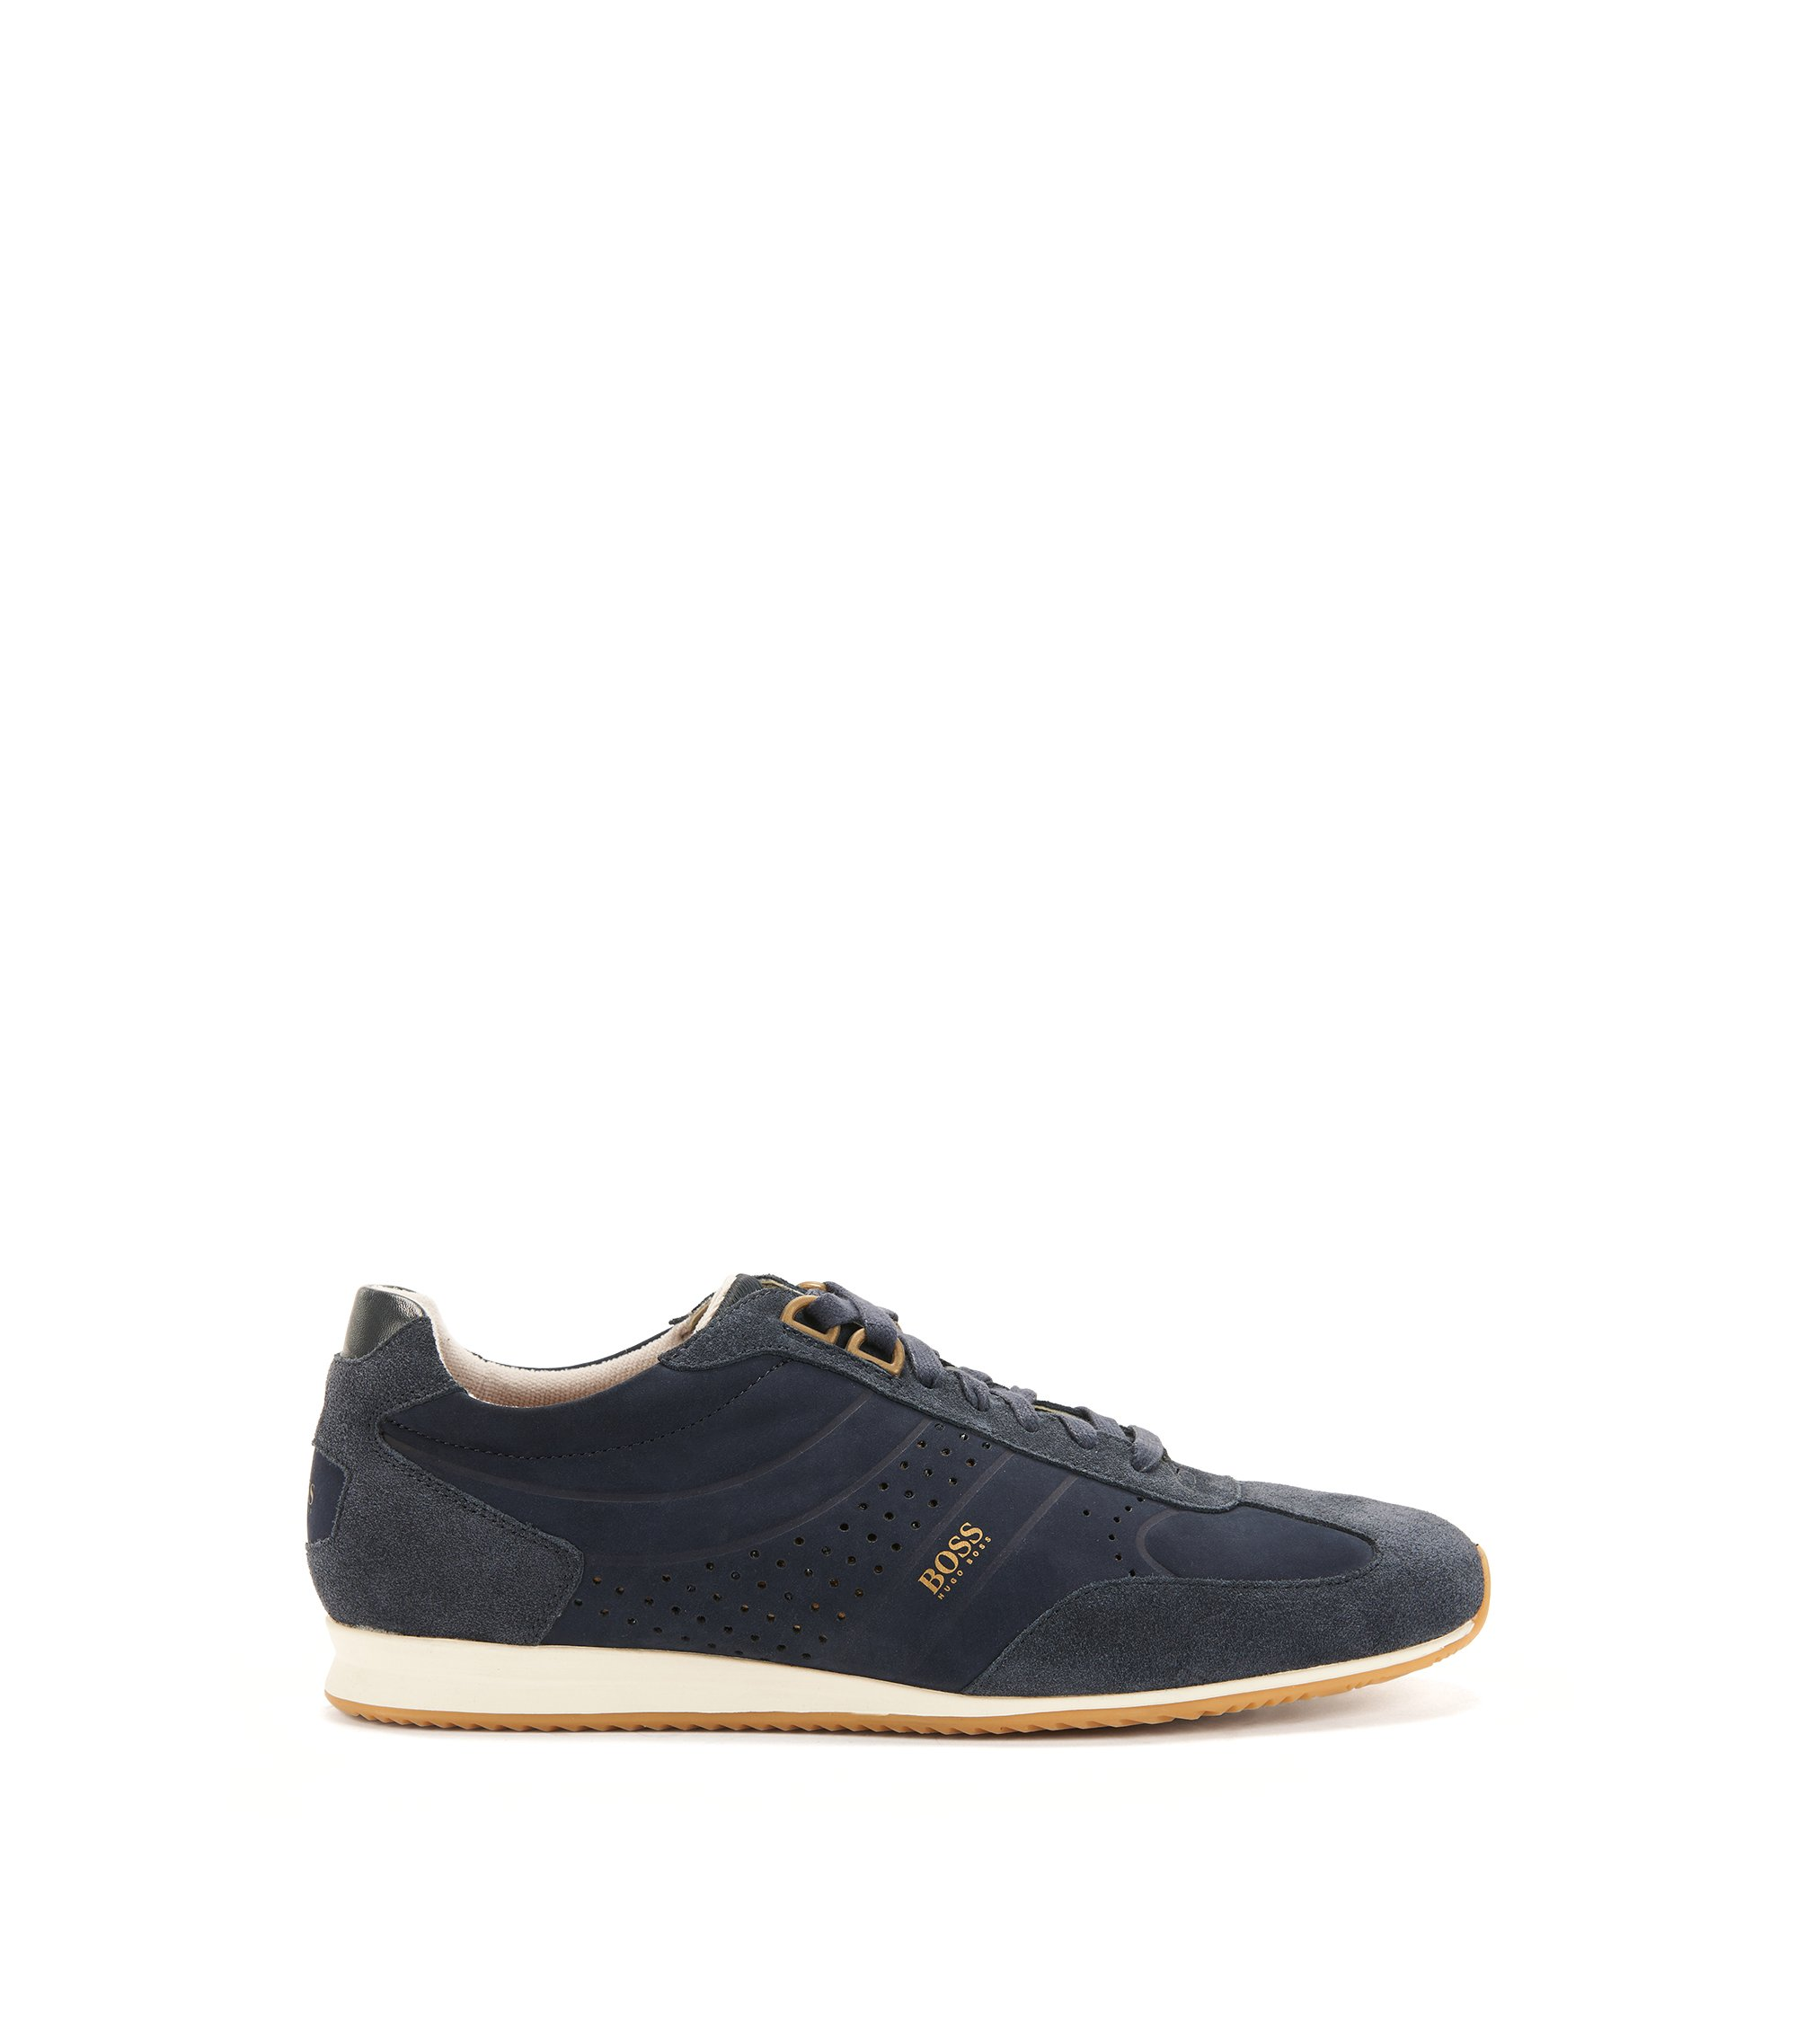 Sneakers low-top in pelle nabuk, Blu scuro